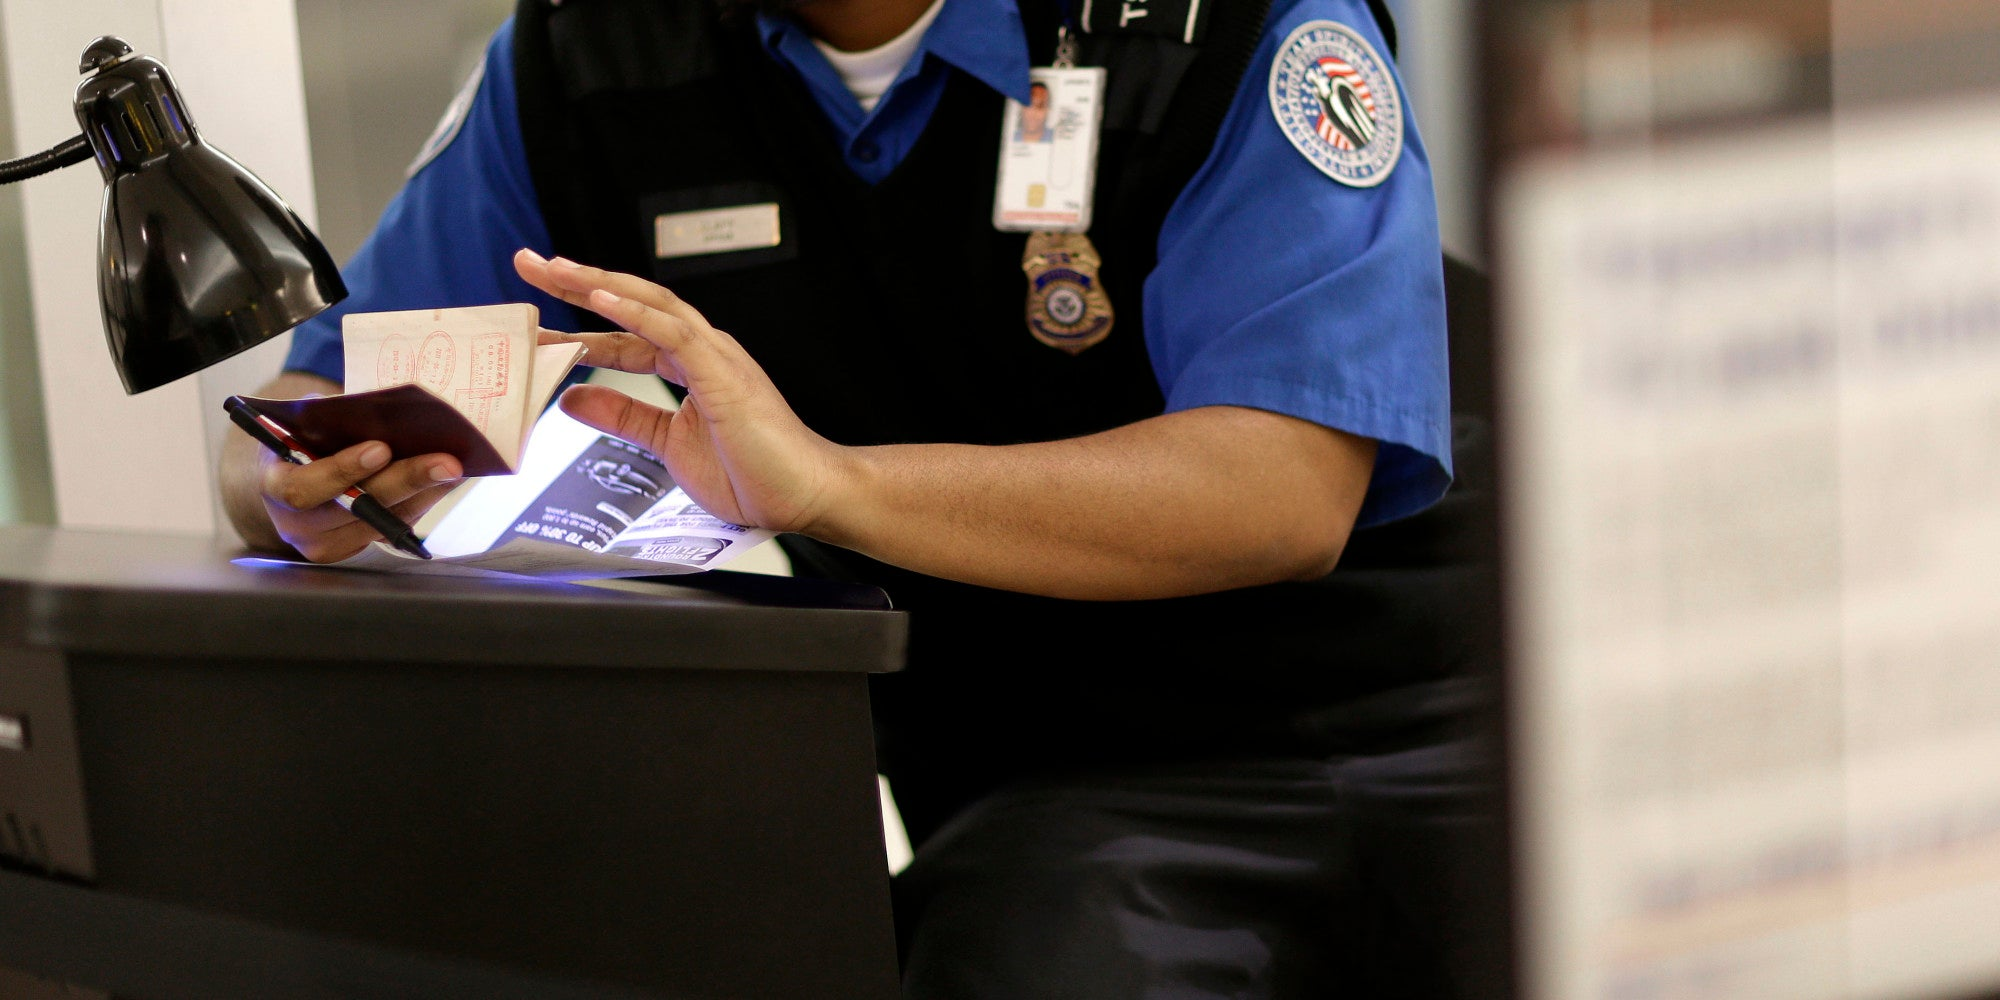 NY May Ban Those on No-Fly List From Owning Guns